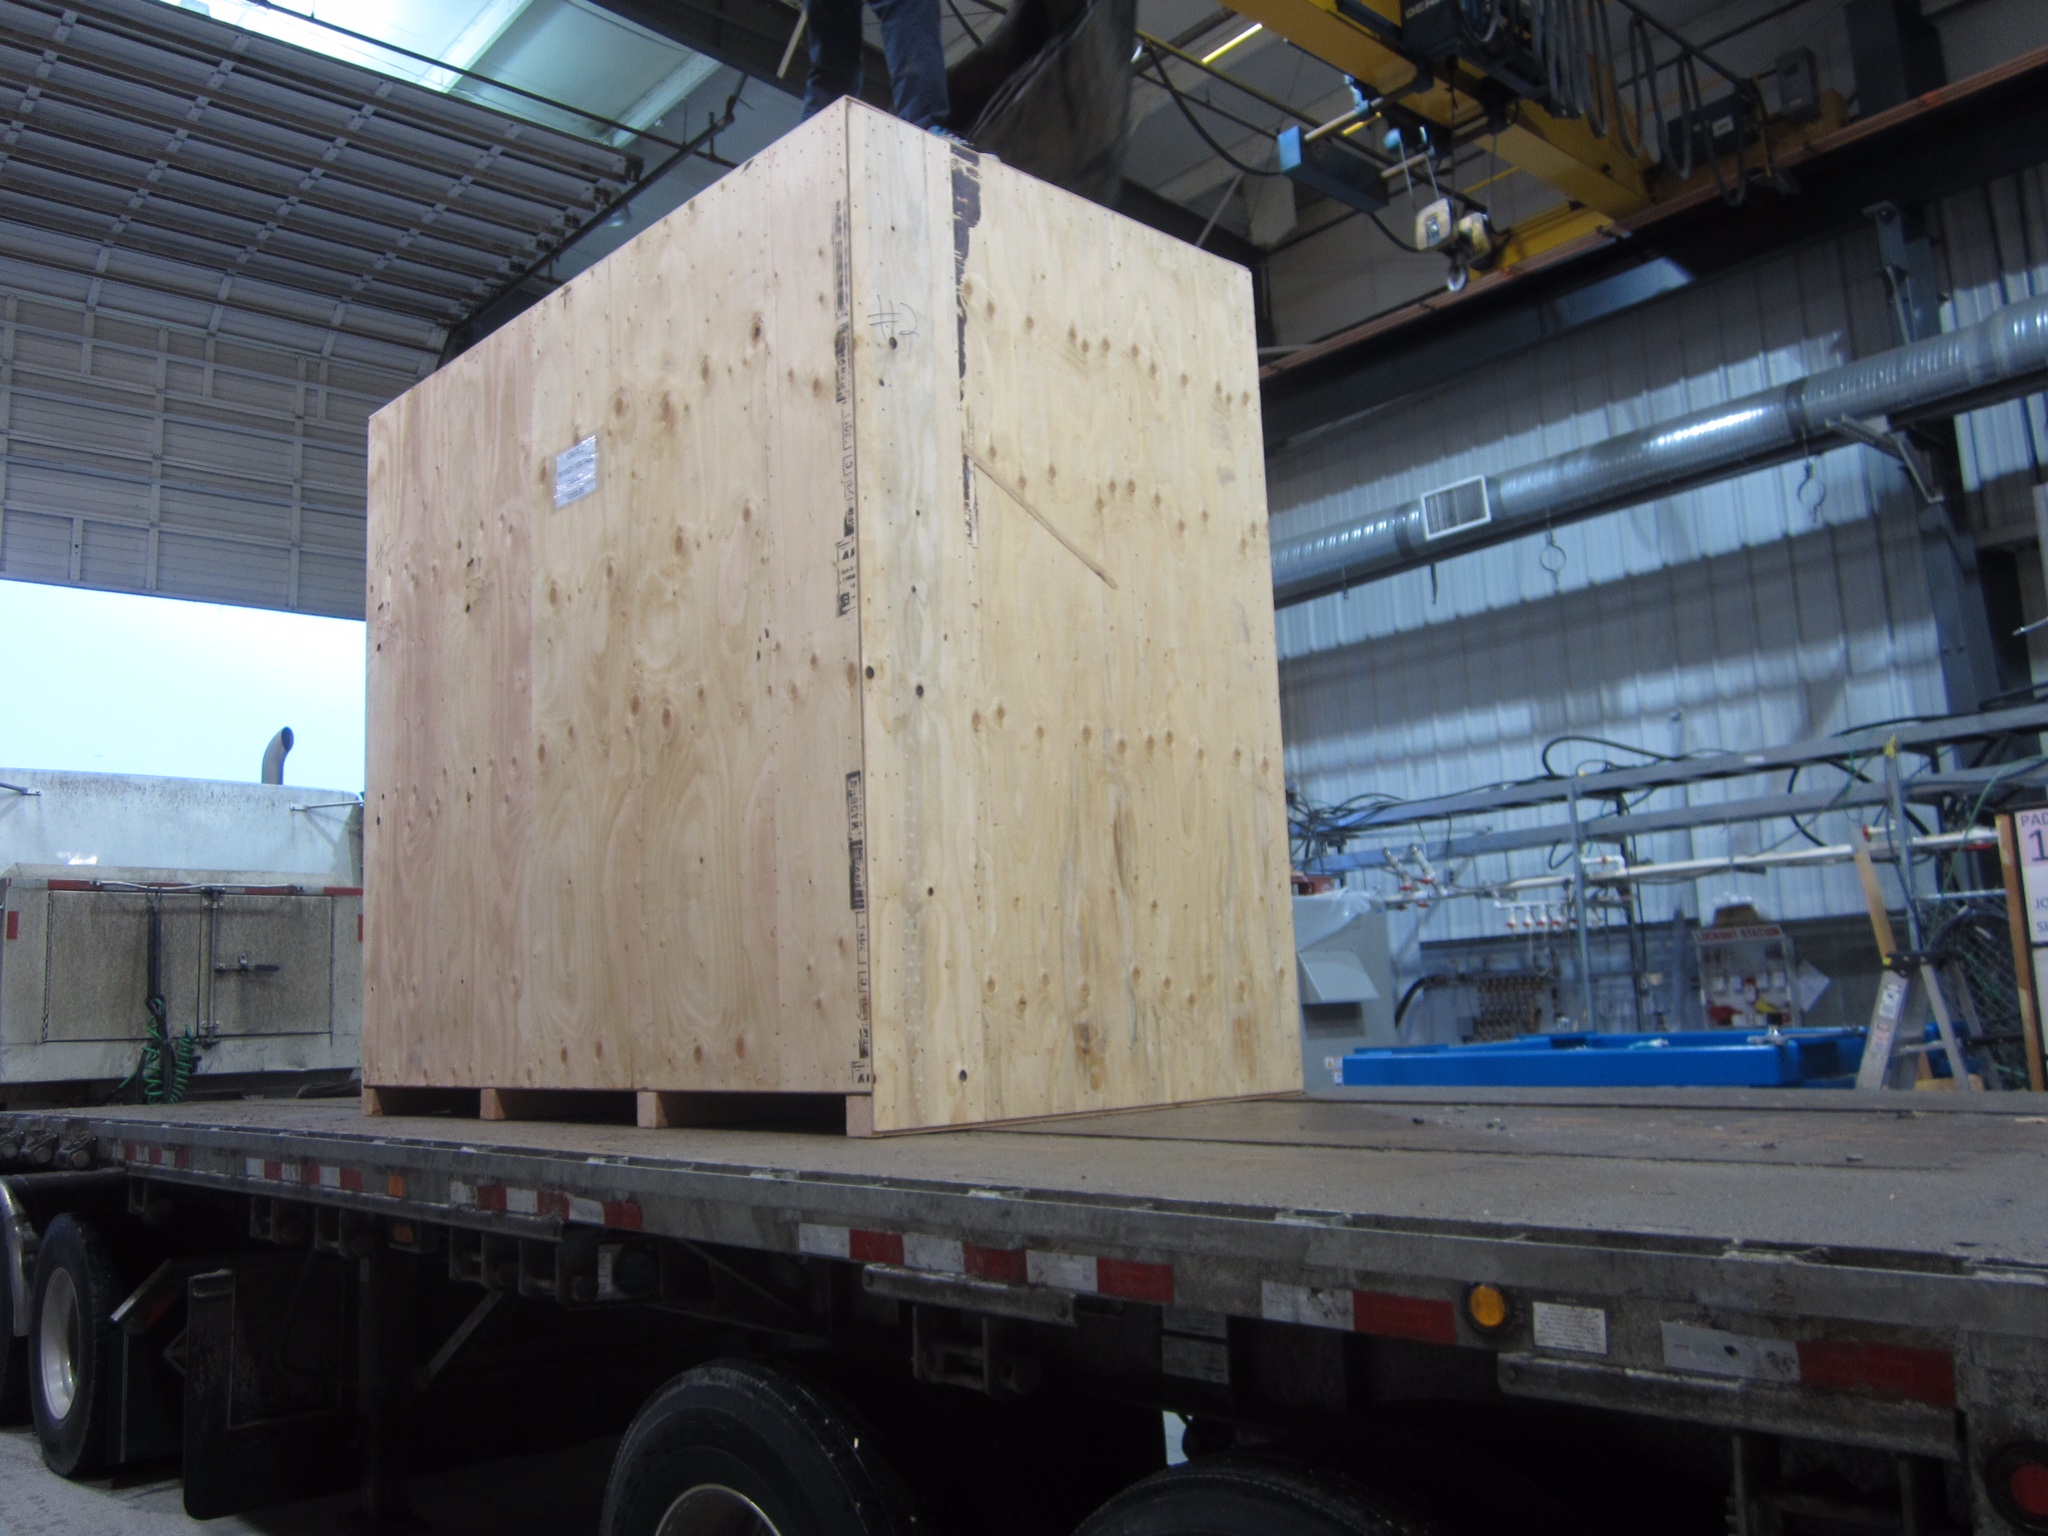 Cyclotron crated